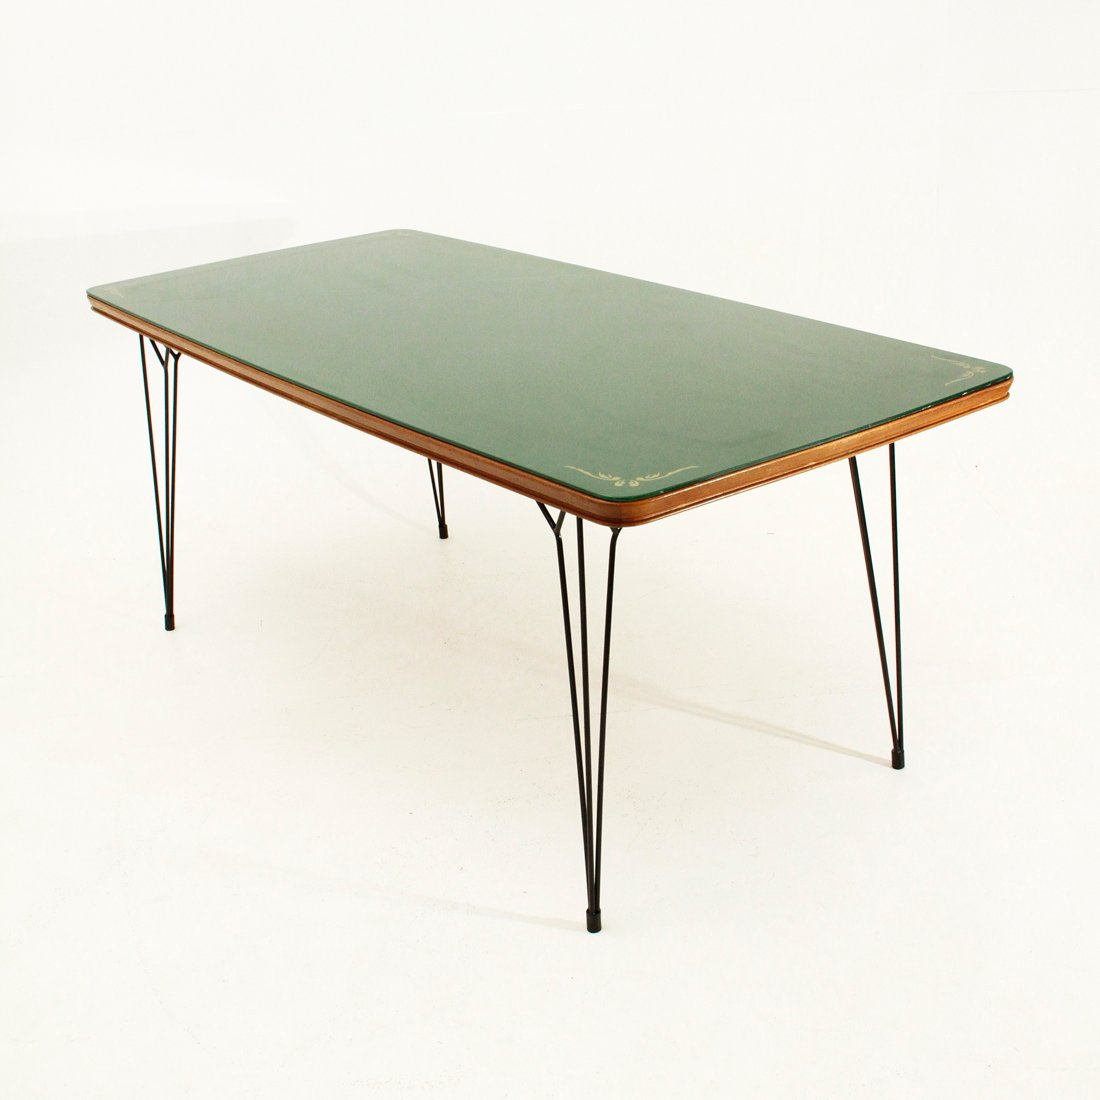 Italian dining table with glass top and metal legs 1950s for Dining table with metal legs